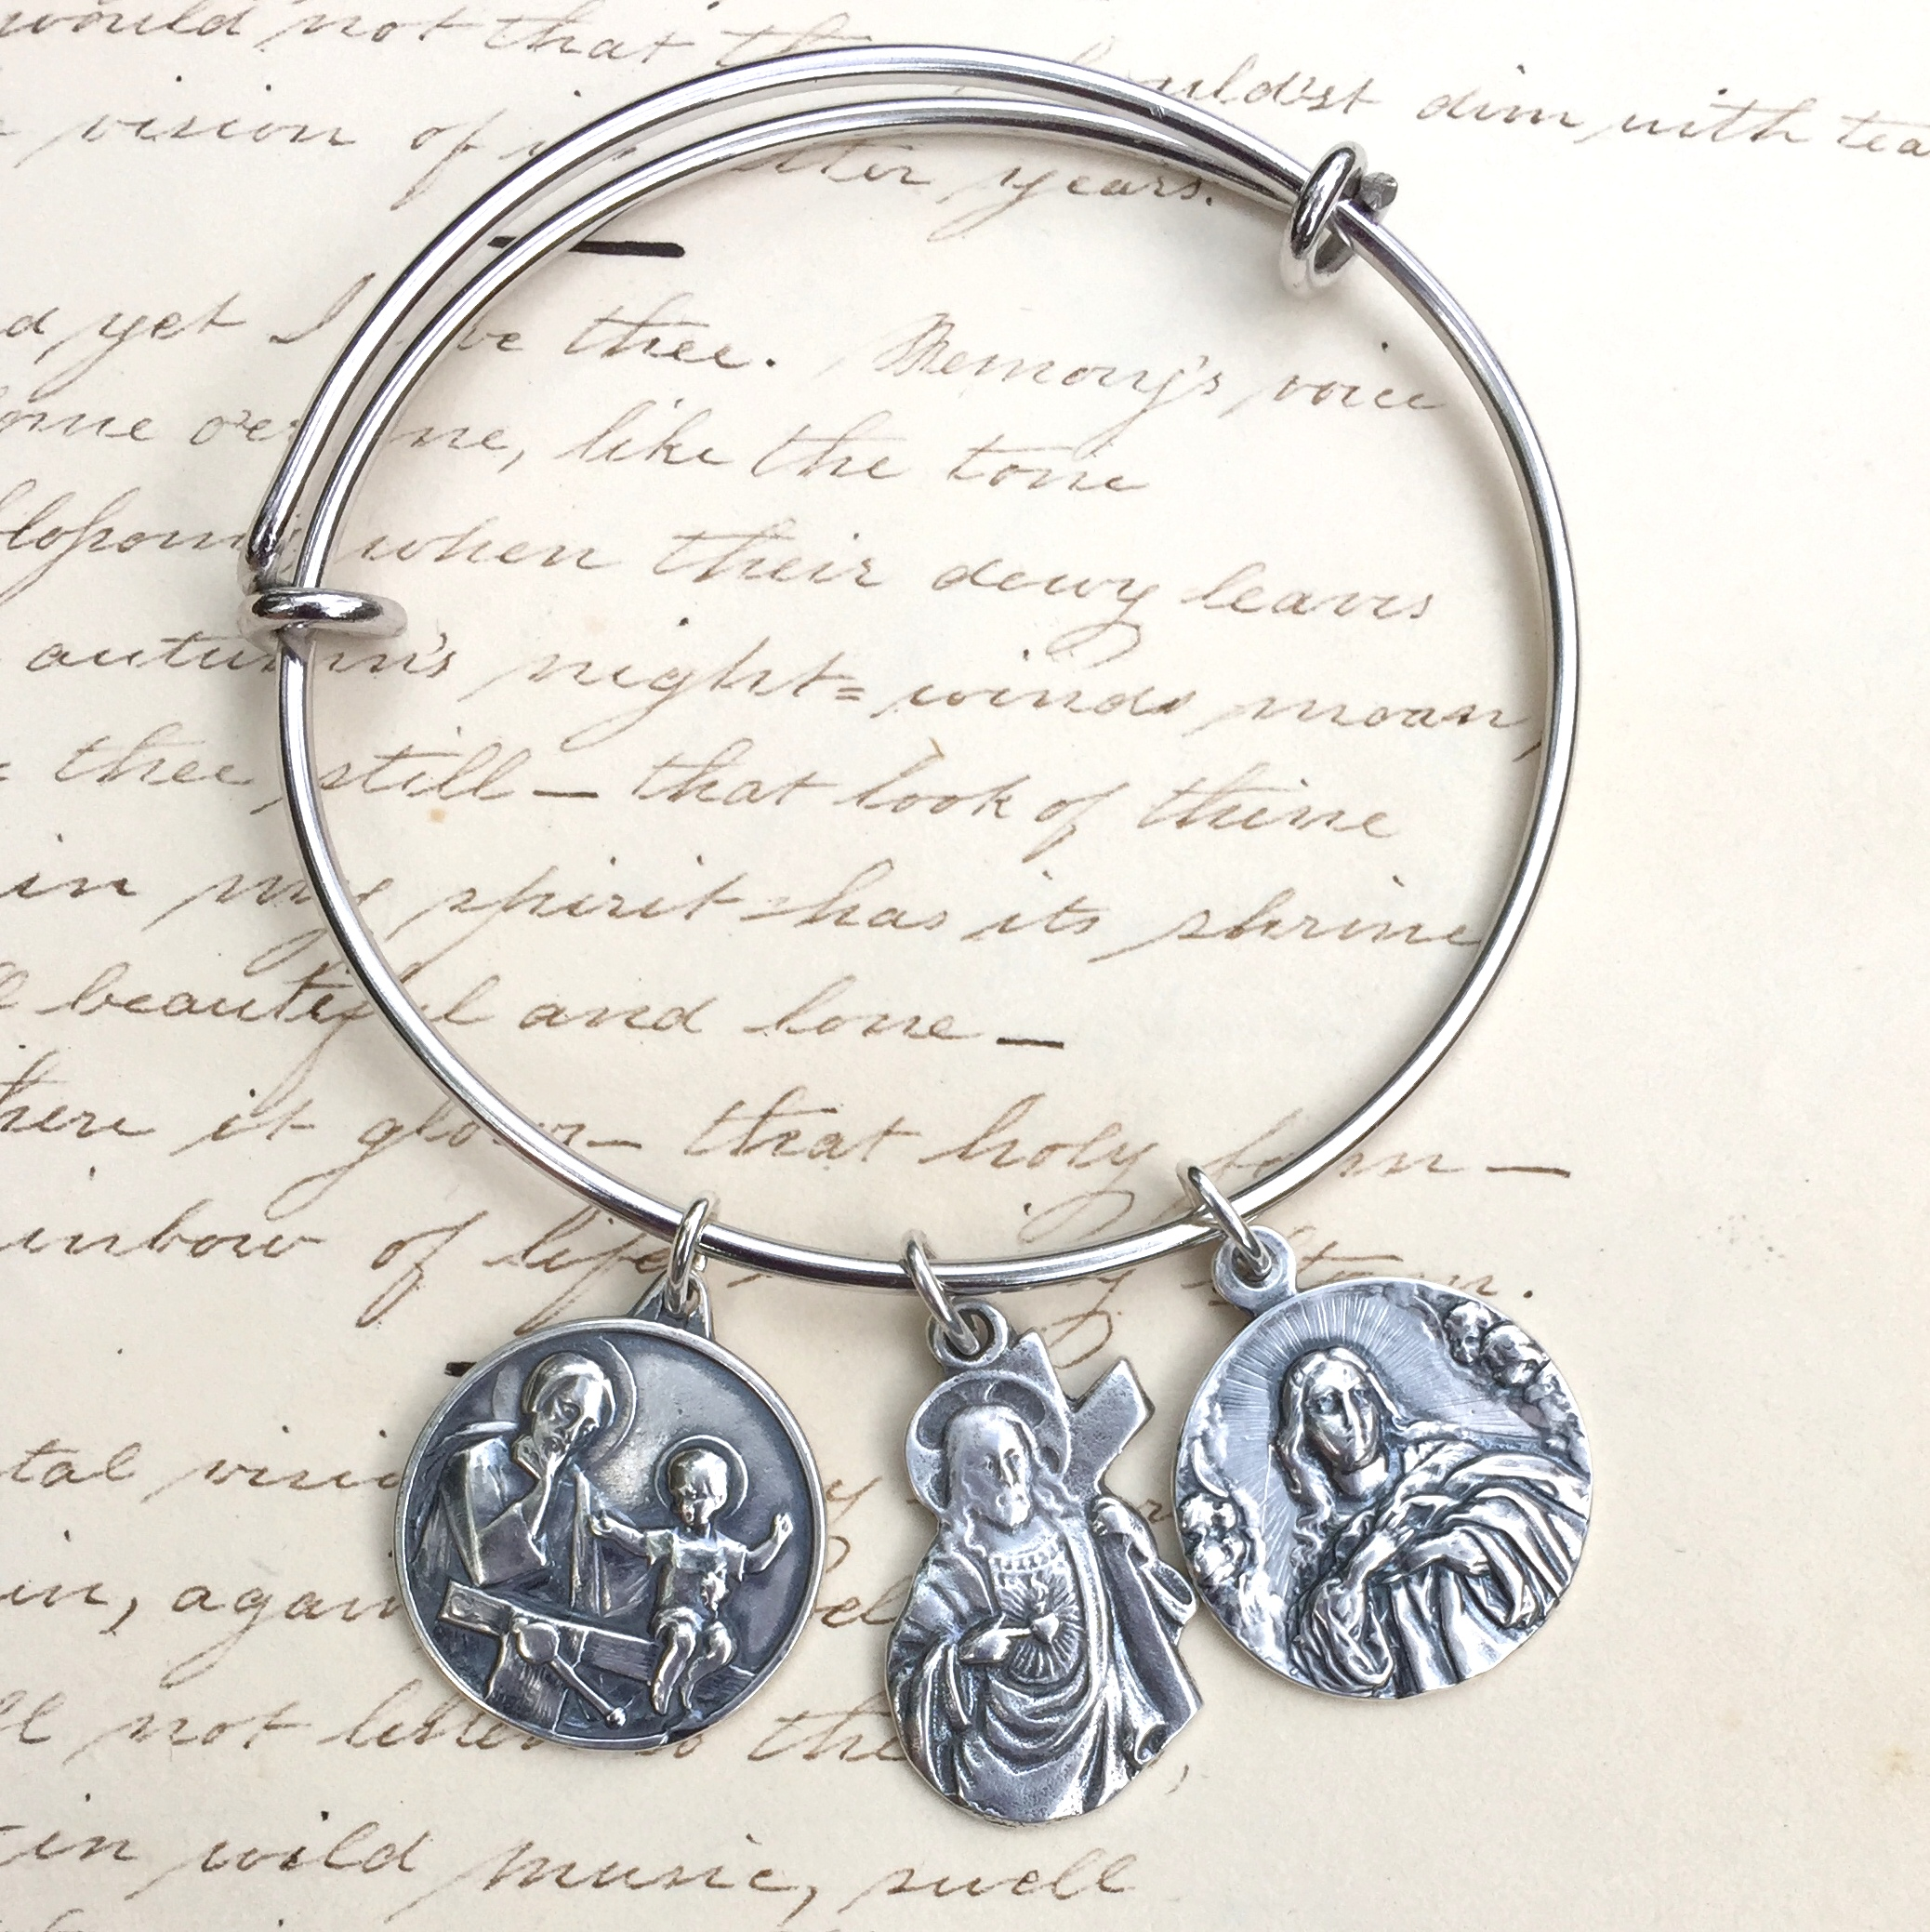 Mother's Gift Special – Holy Family Bangle Bracelet